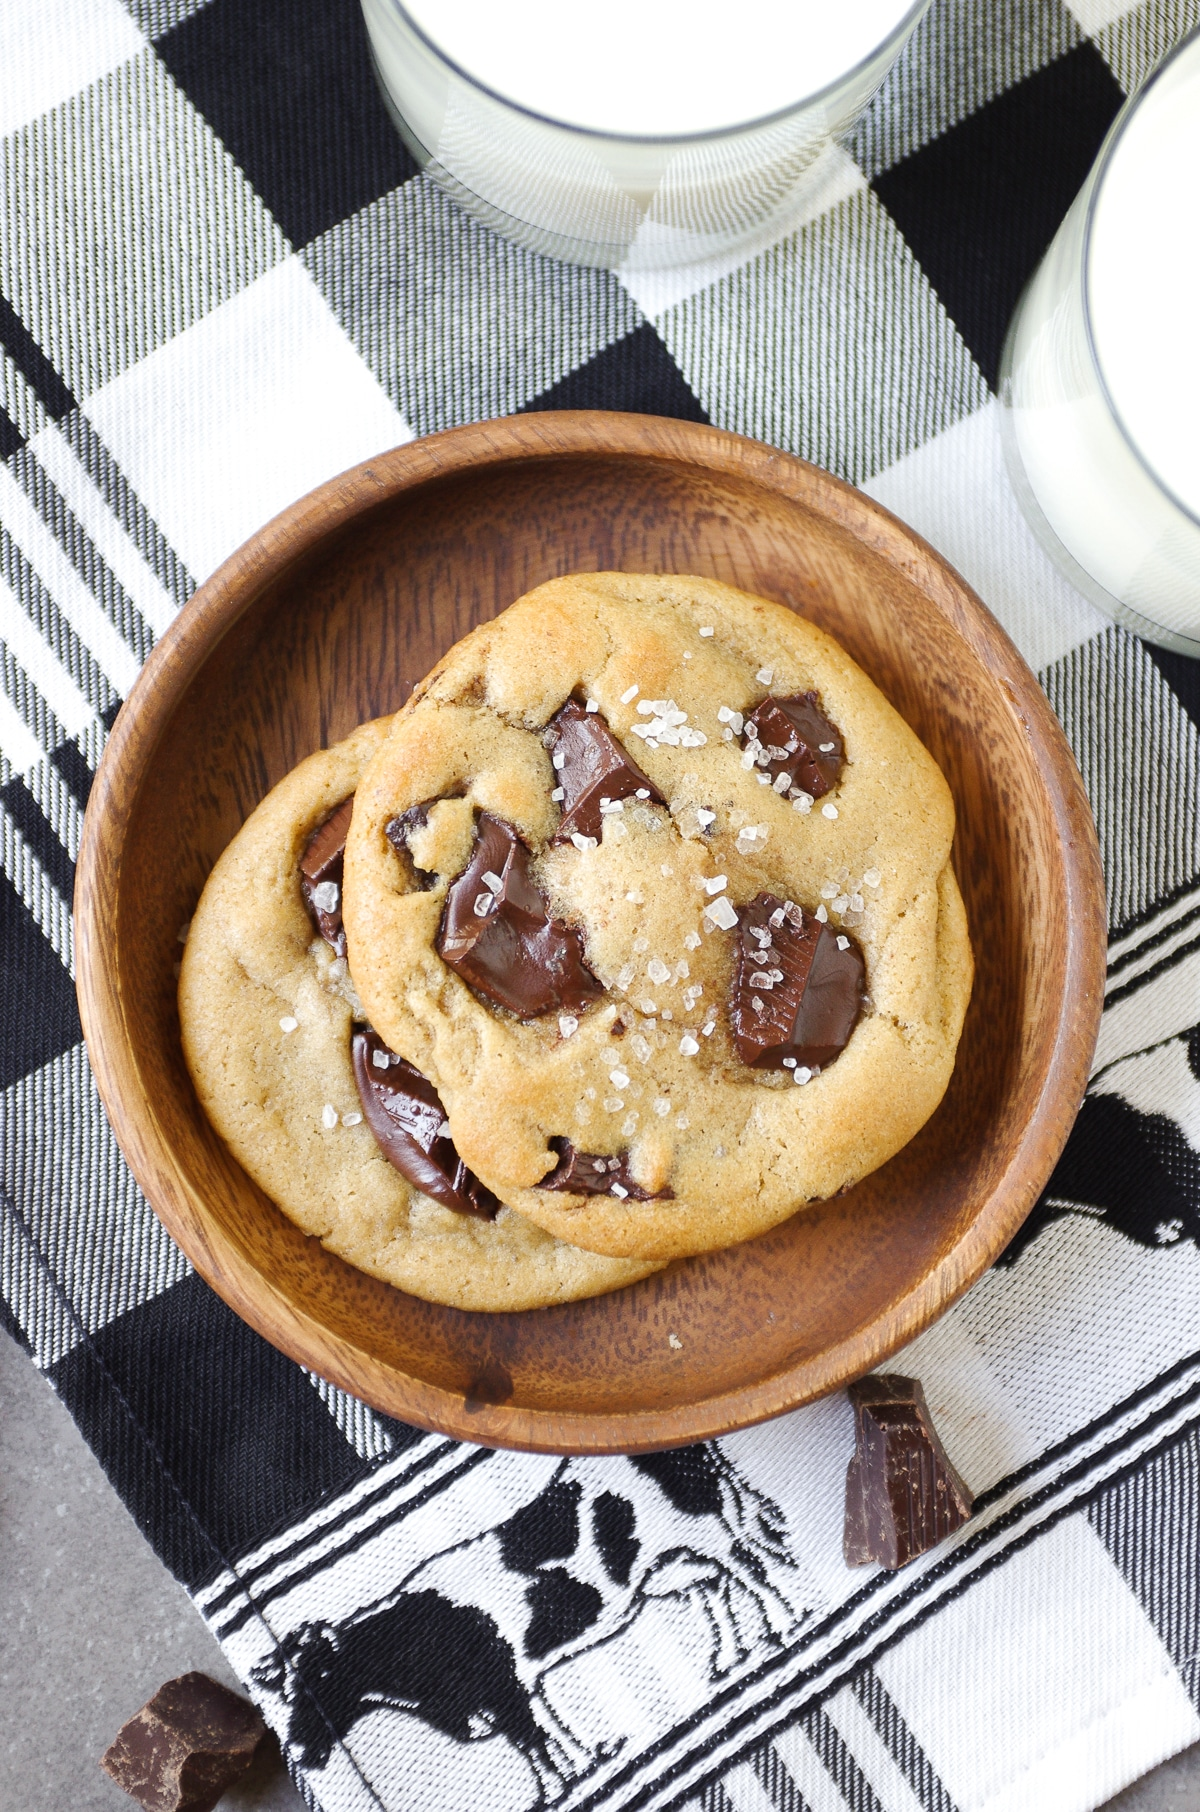 Image of a small wooden plate holding two chocolate chunk cookies topped with flakey sea salt and served with a tall glass of milk.